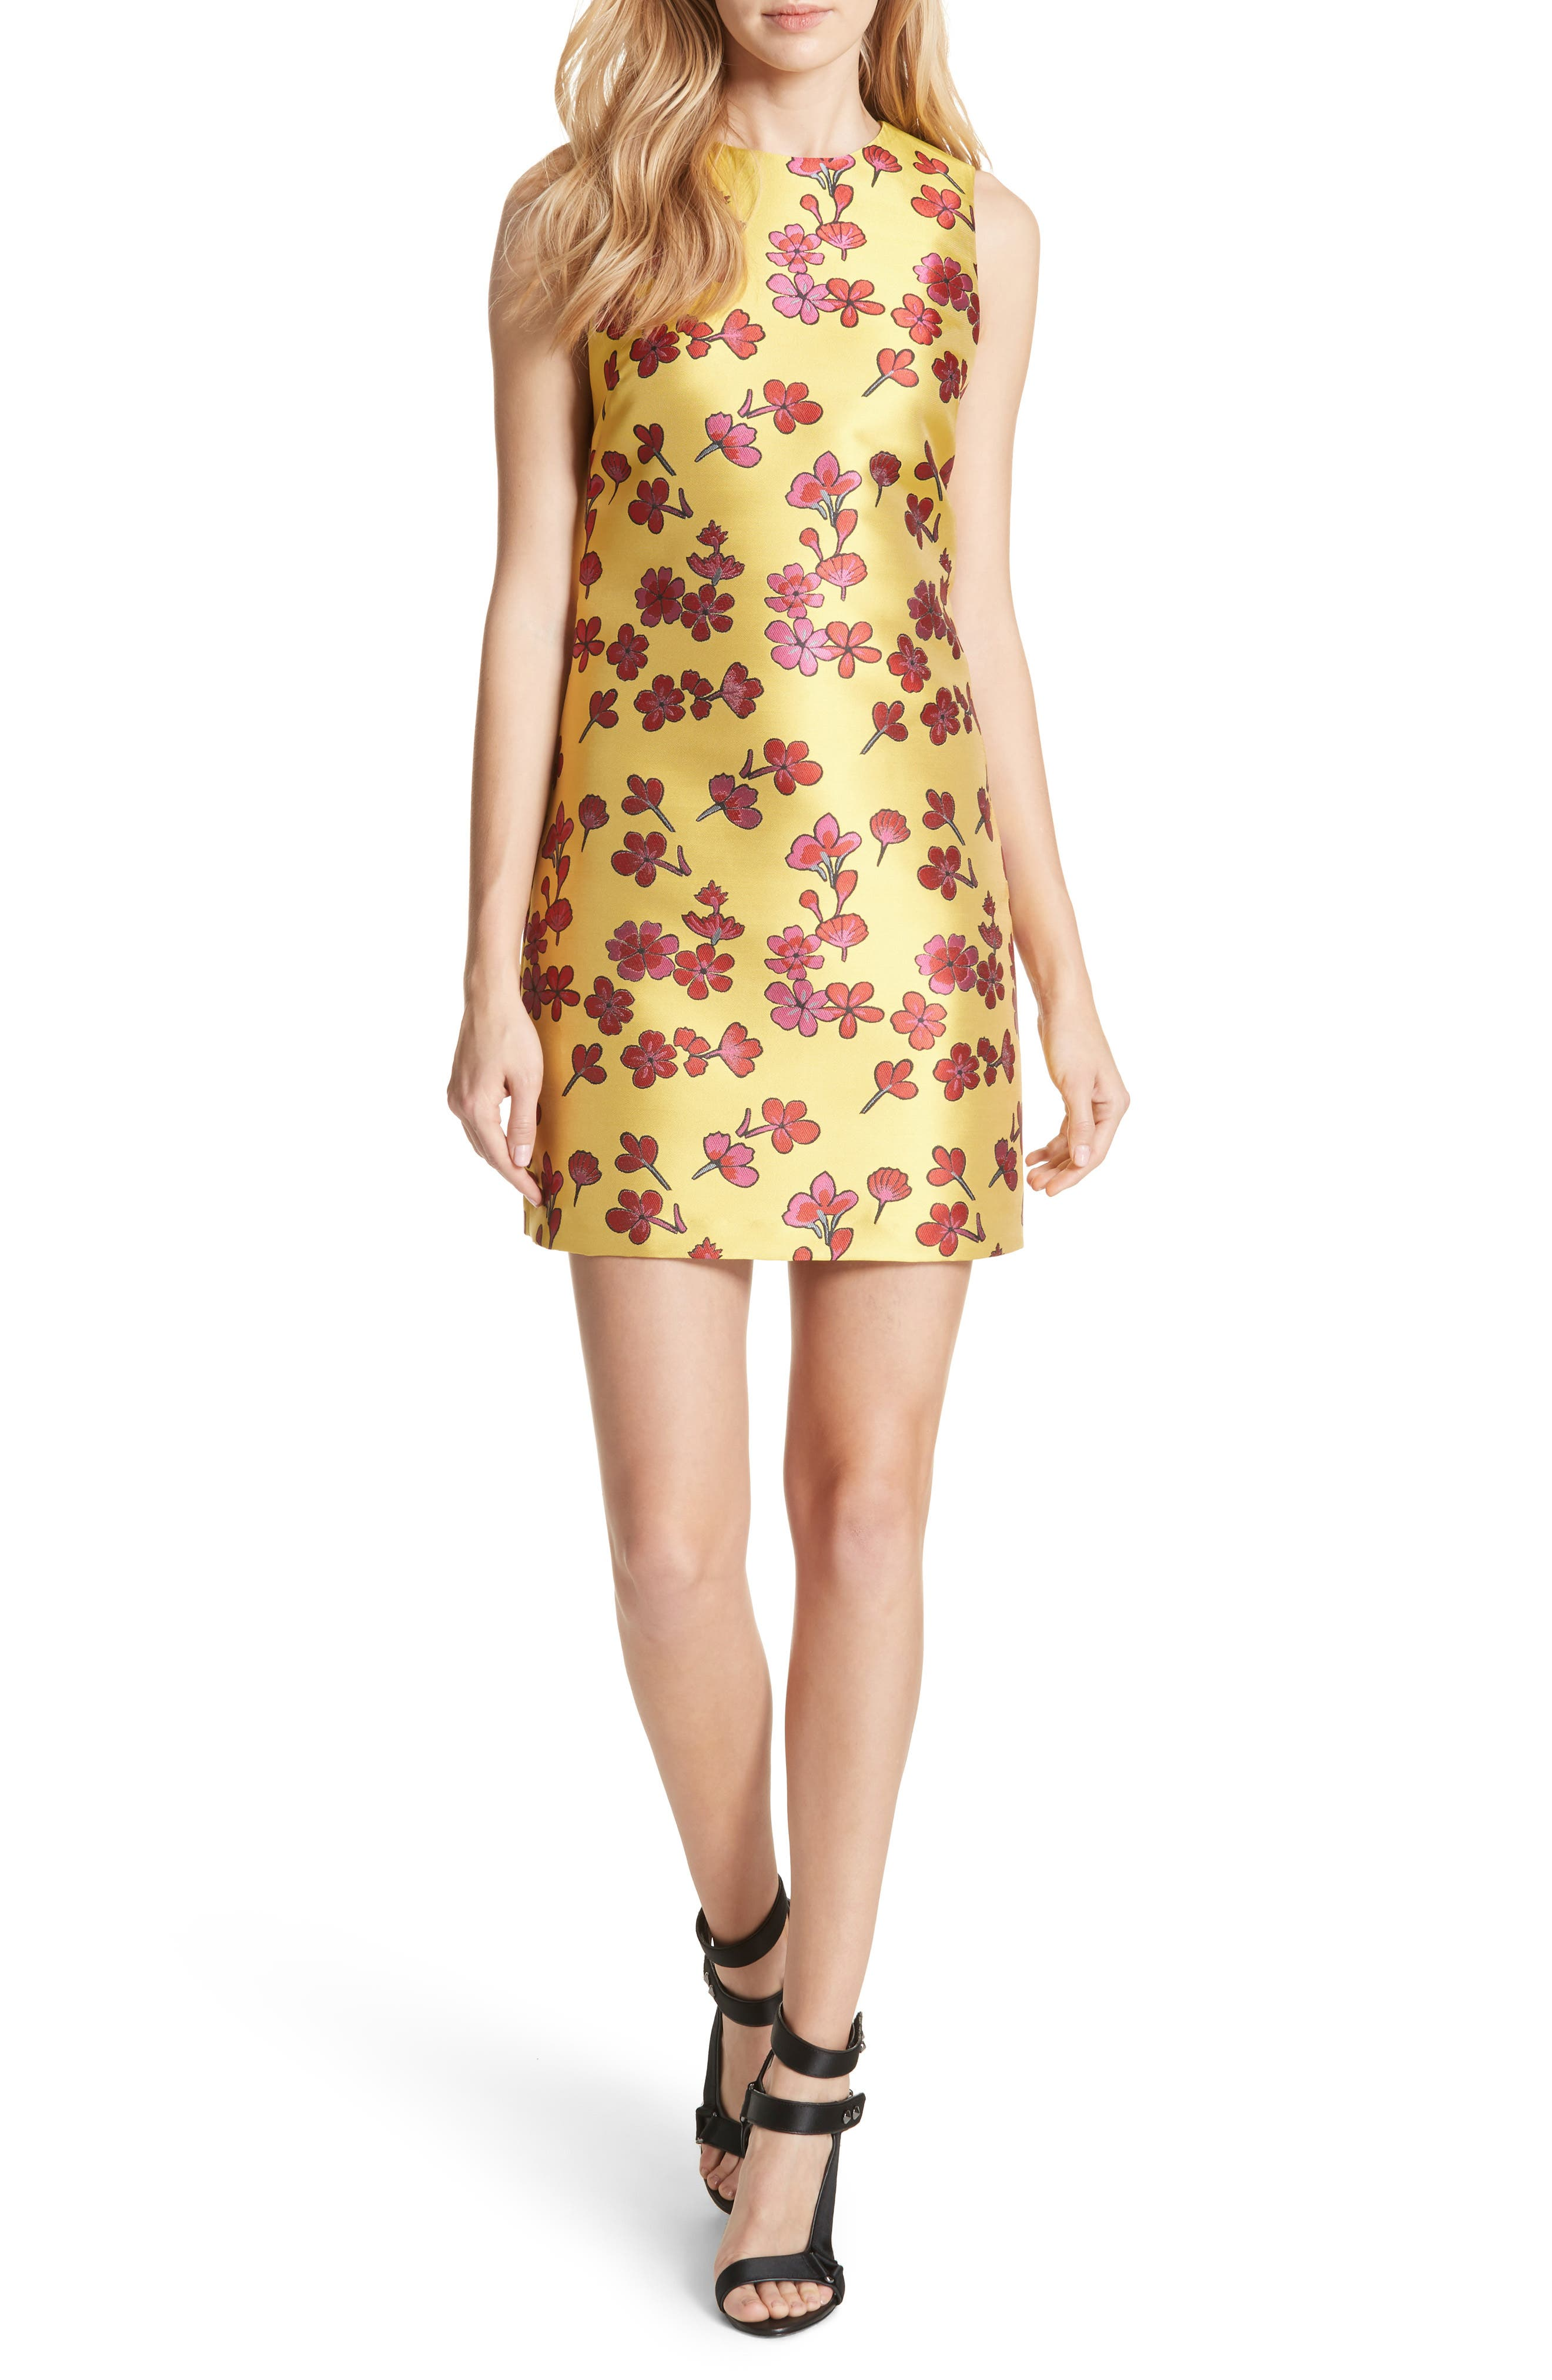 Coley Floral A-Line Shift Dress,                         Main,                         color, Sunflower/ Poppy